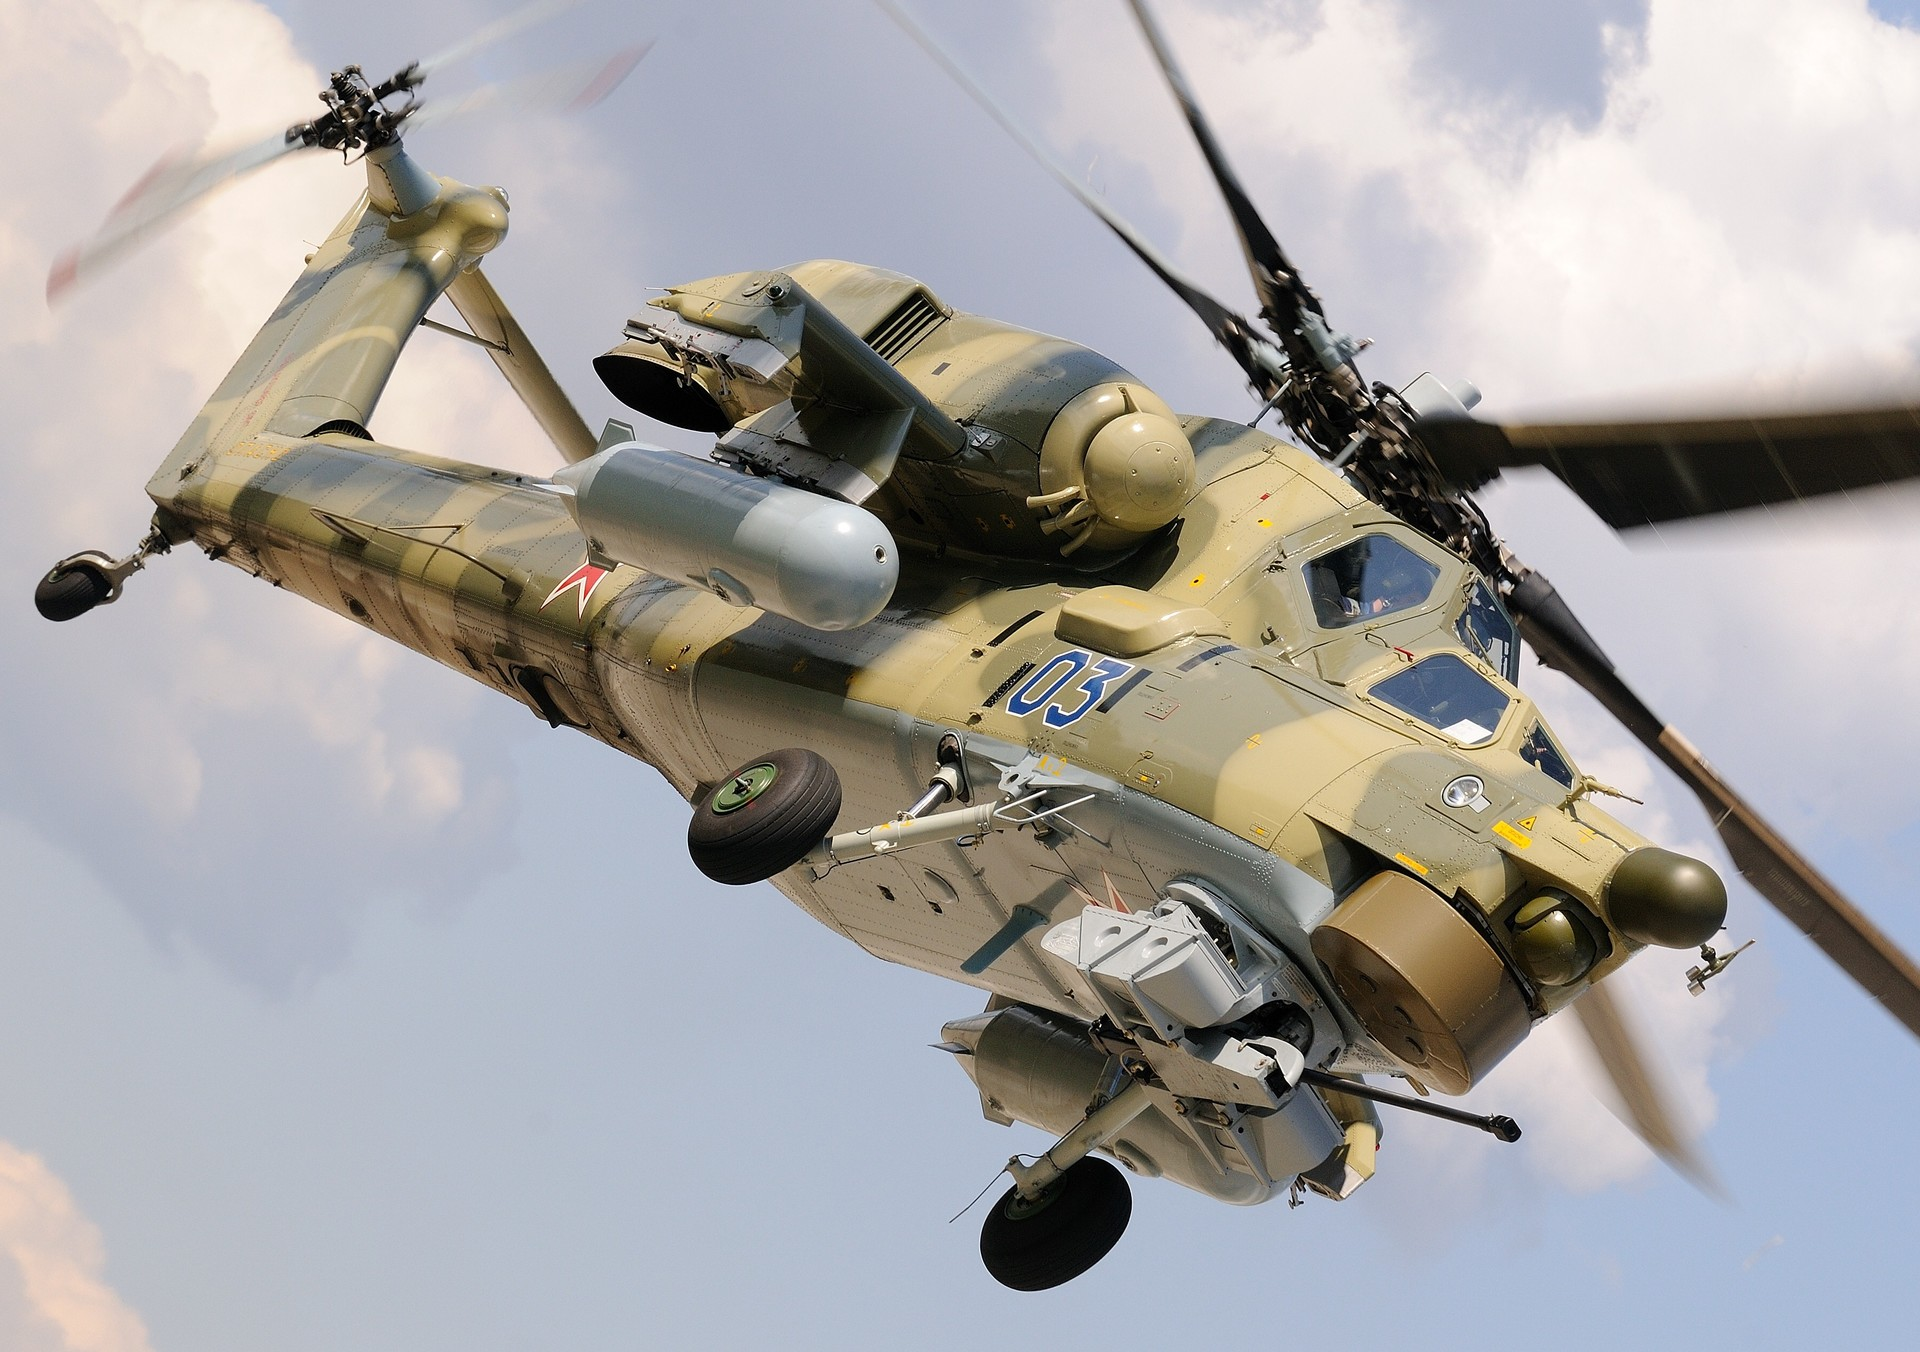 Rostec has completed the delivery of attack helicopters as part of the state defense contract for 2019